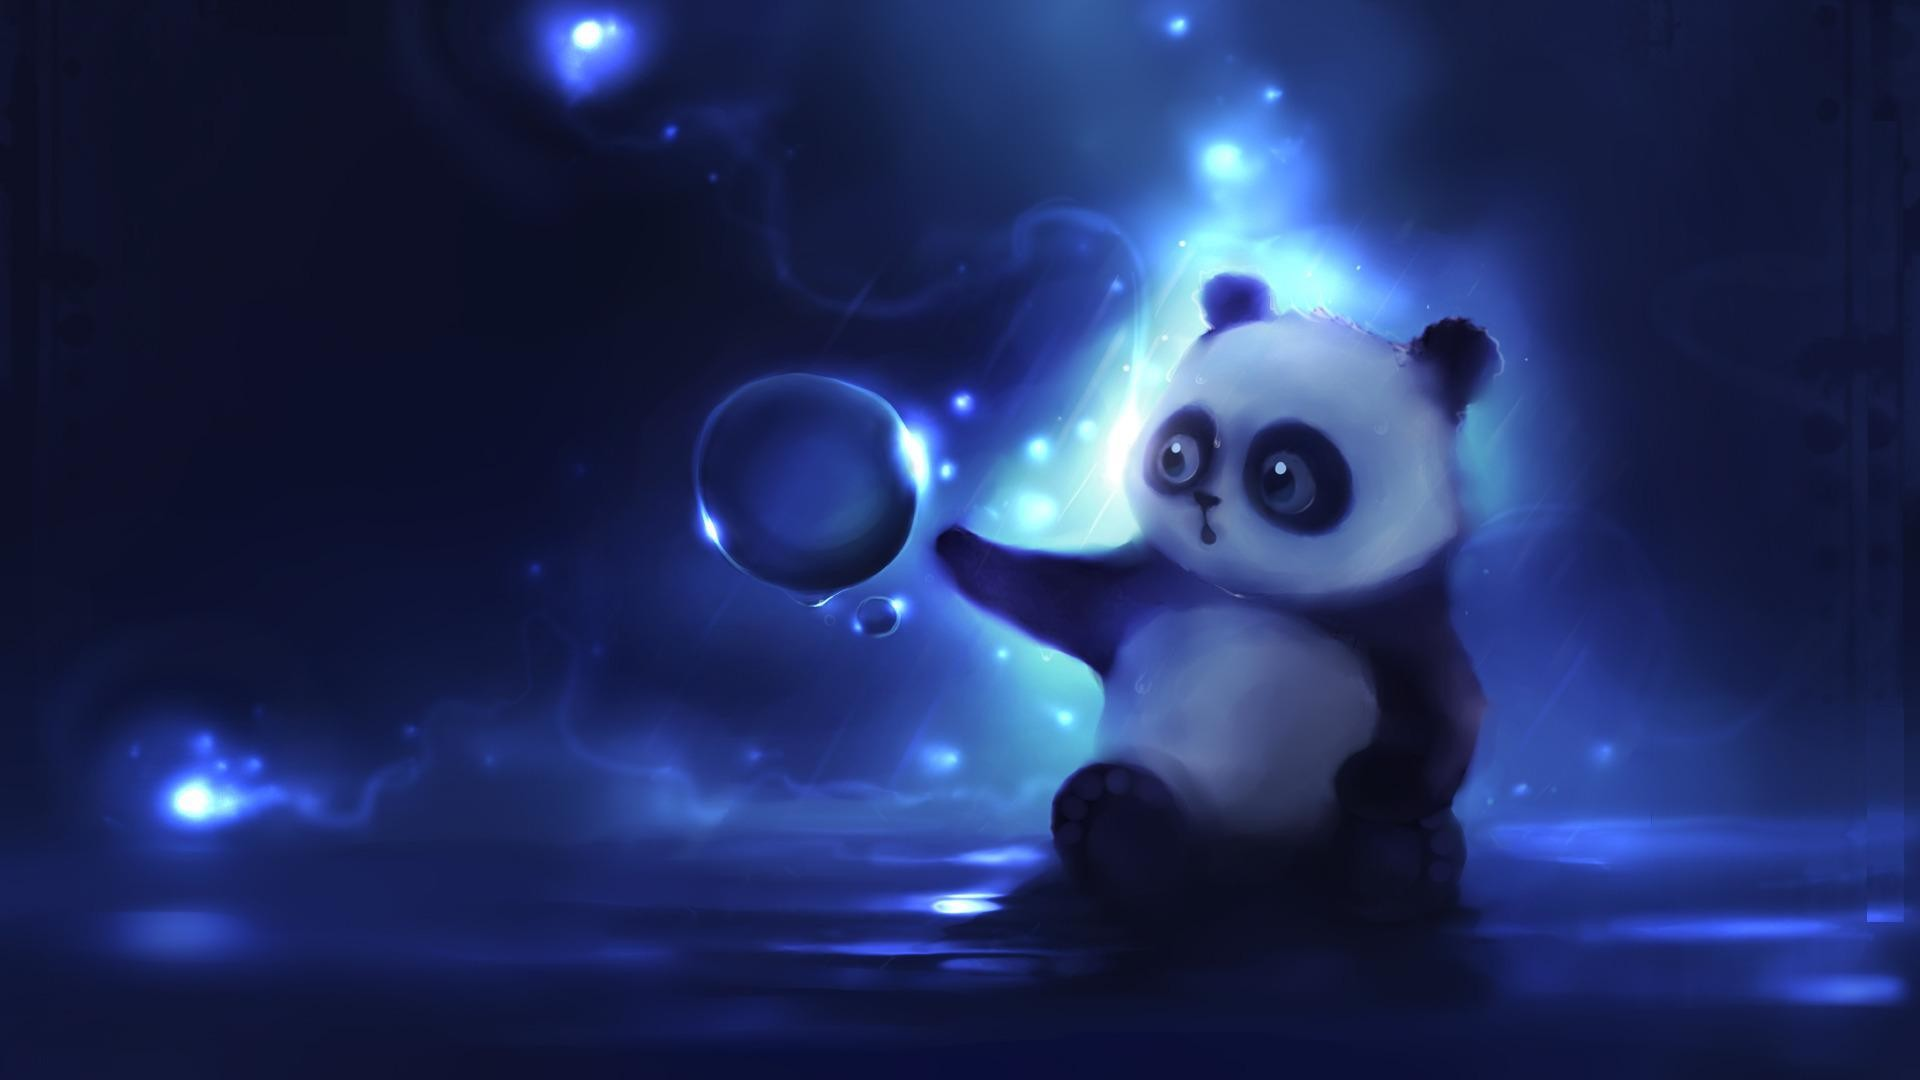 Cute Animated Moving Wallpapers For Desktop Cute animated panda .